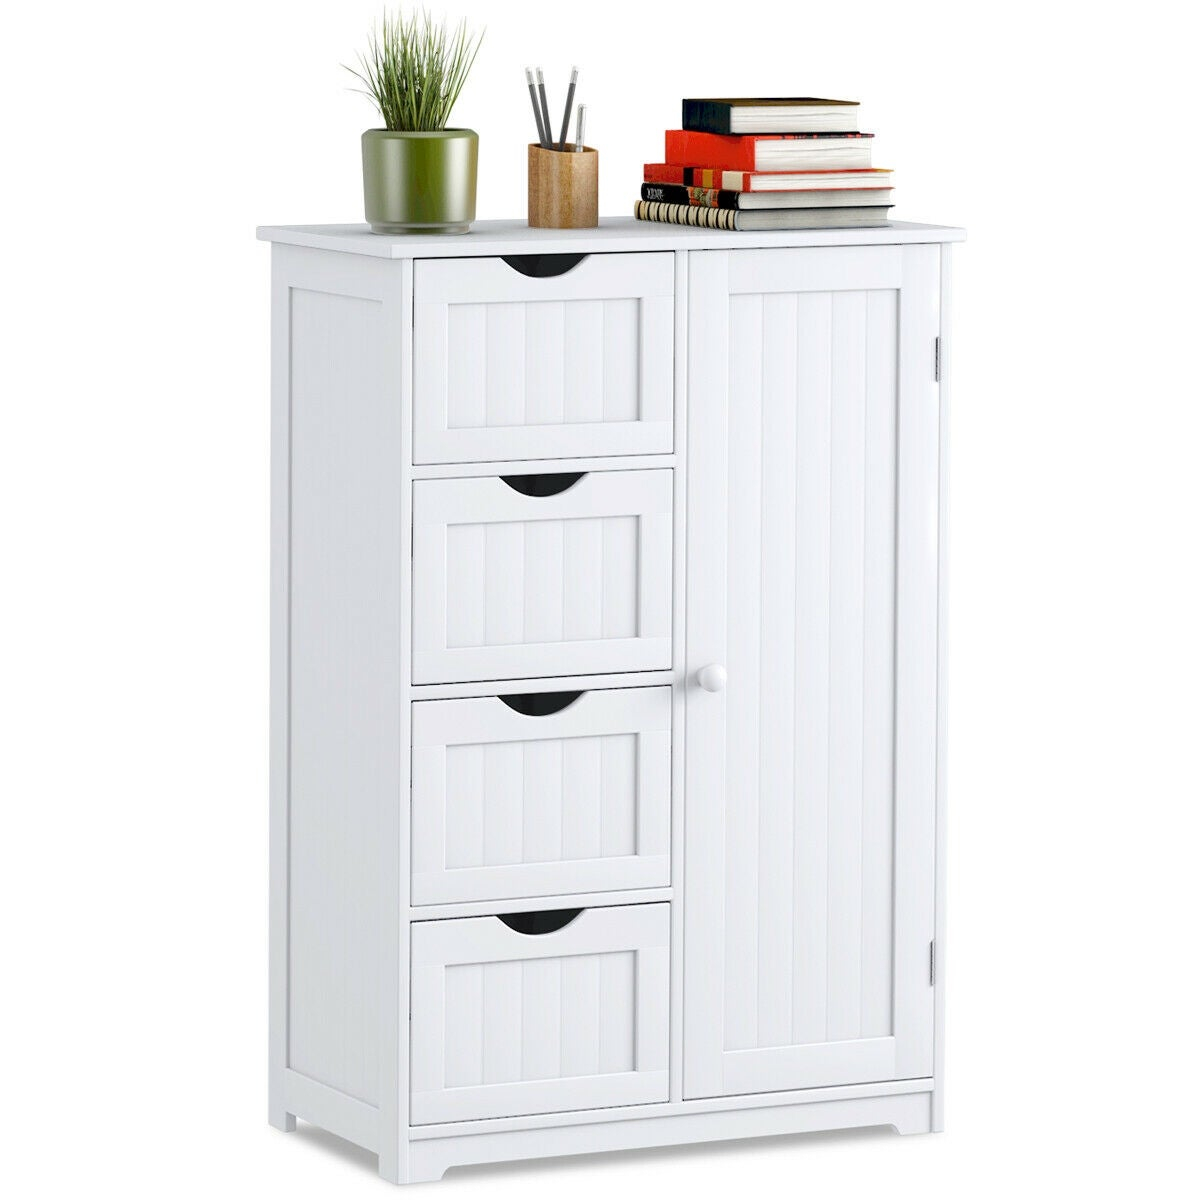 Costway Wooden 4 Drawer Bathroom Cabinet Storage Cupboard 2 Shelves Free Standing White pertaining to proportions 1200 X 1200